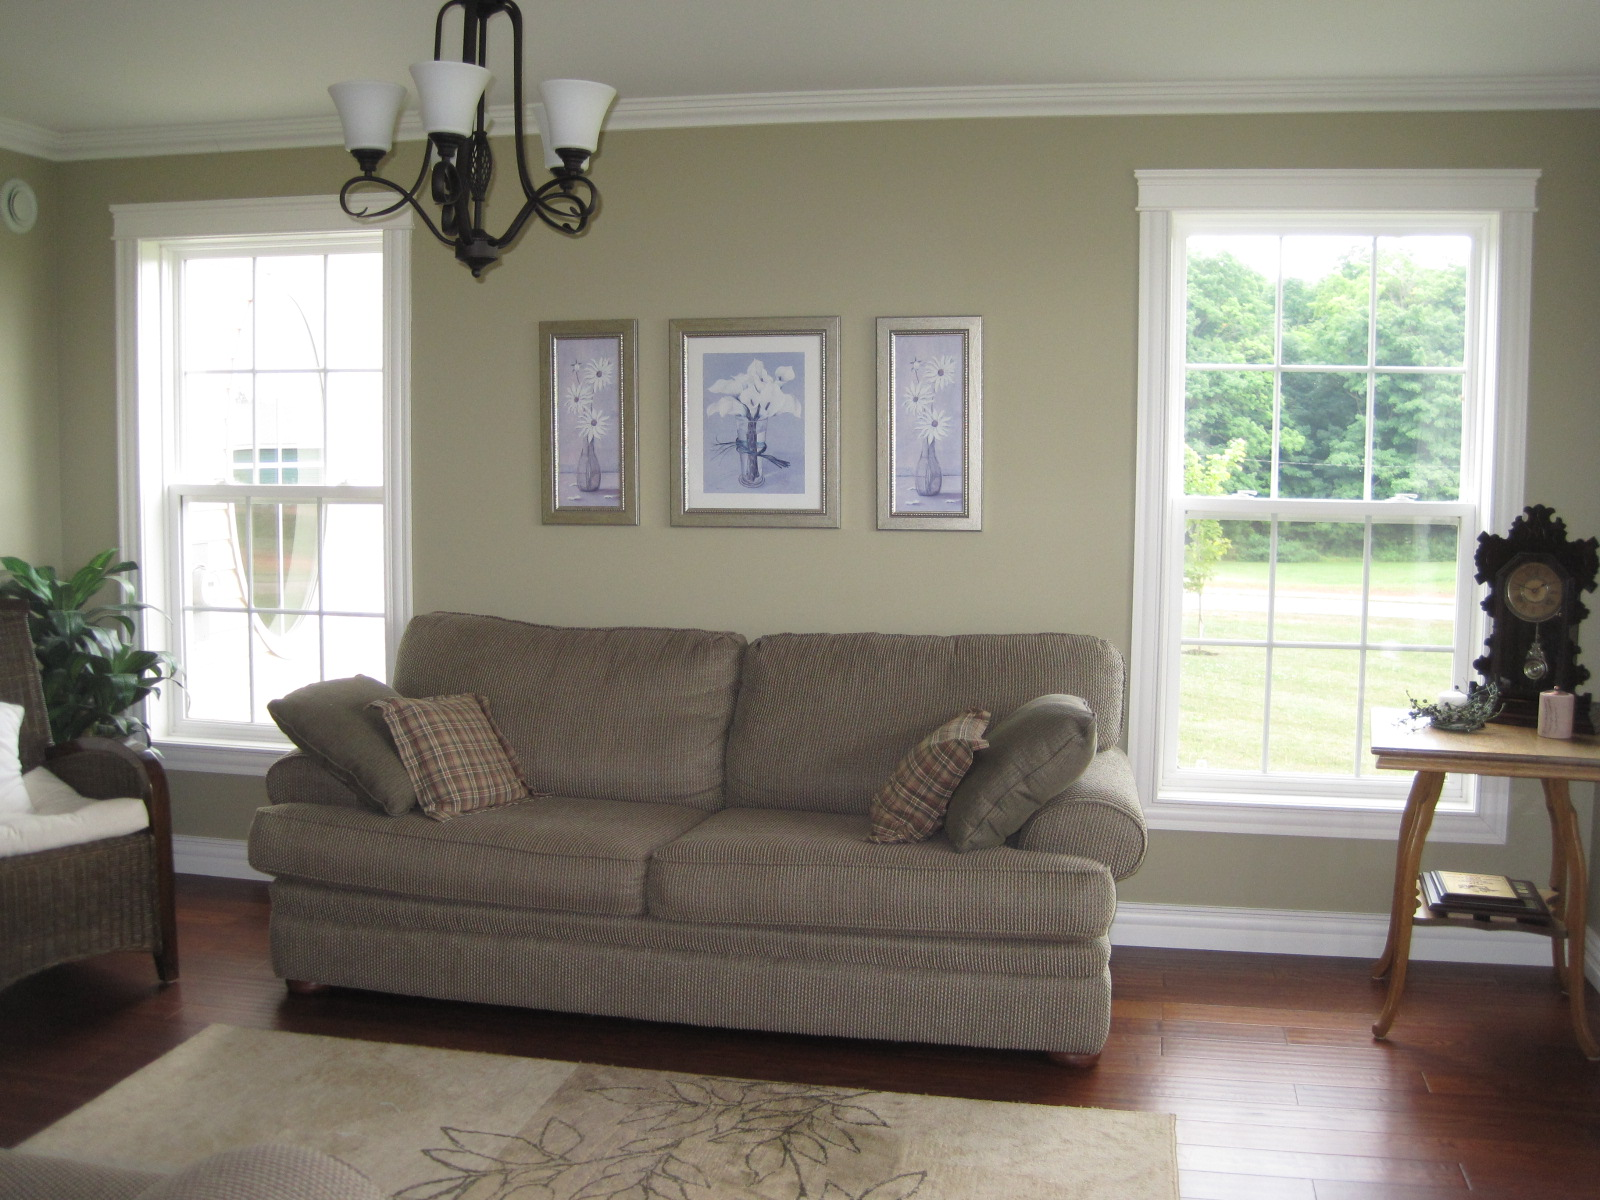 Modern jane ellen 39 s house part 2 - Benjamin moore revere pewter living room ...